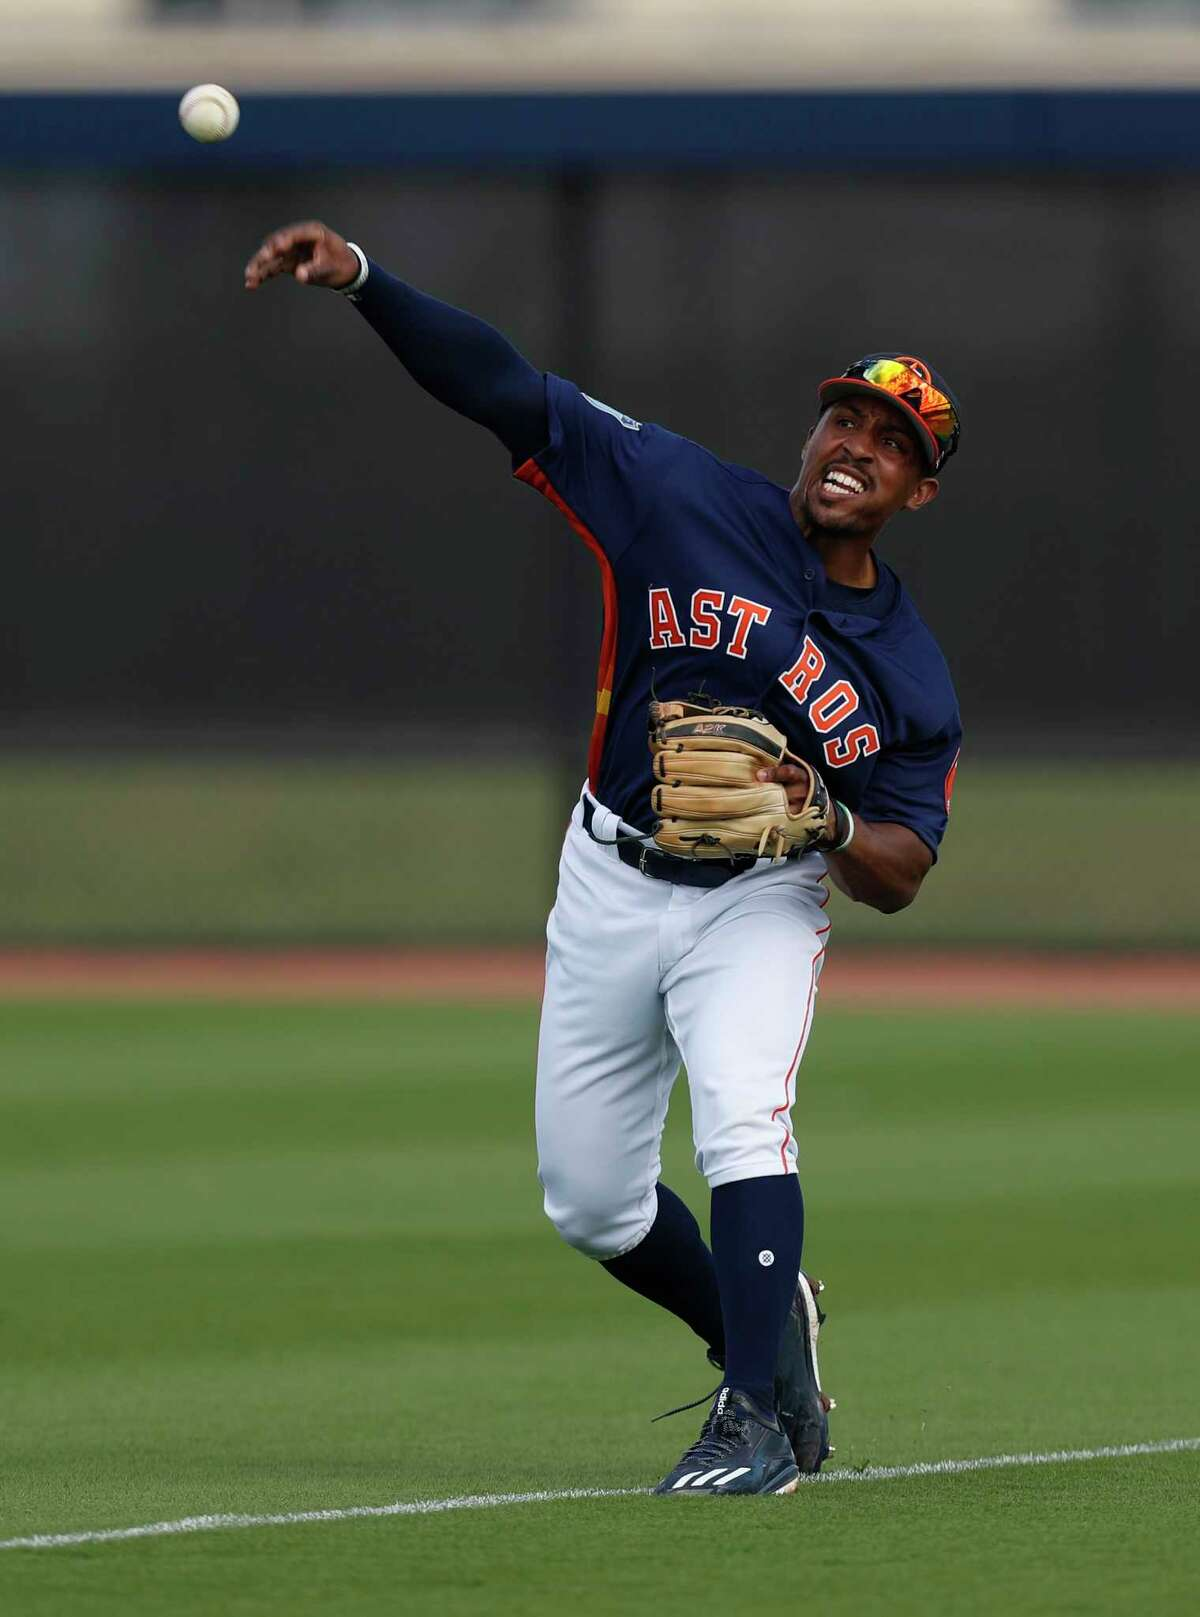 Houston Astros left fielder Tony Kemp (18) shows a ball during a drill at spring training at The Ballpark of the Palm Beaches, in West Palm Beach, Florida, Thursday, February 23, 2017.